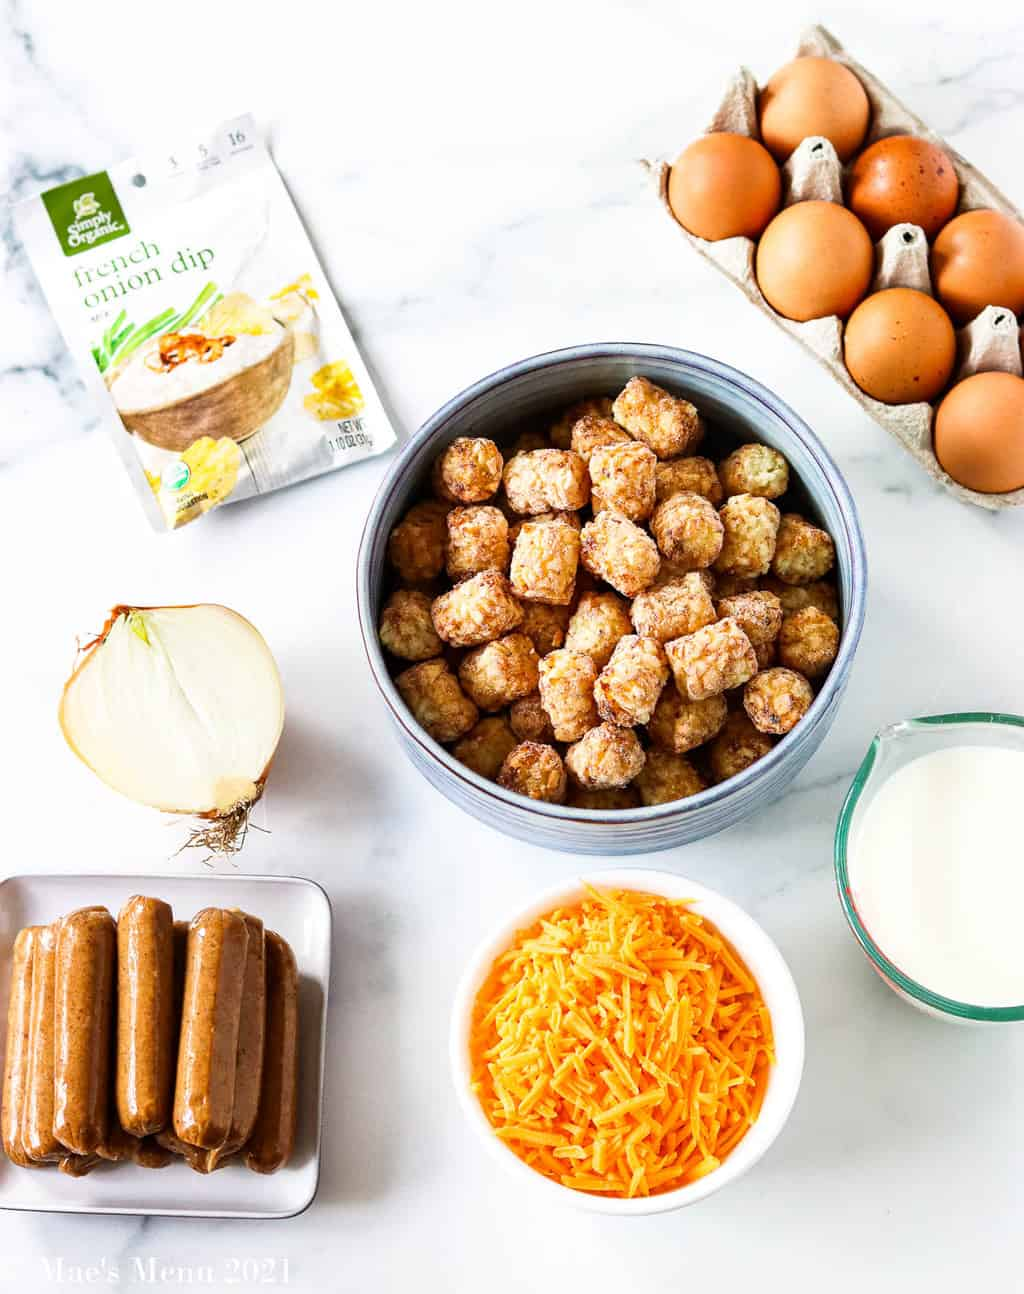 all the ingredients for breakfast tater tot casserole